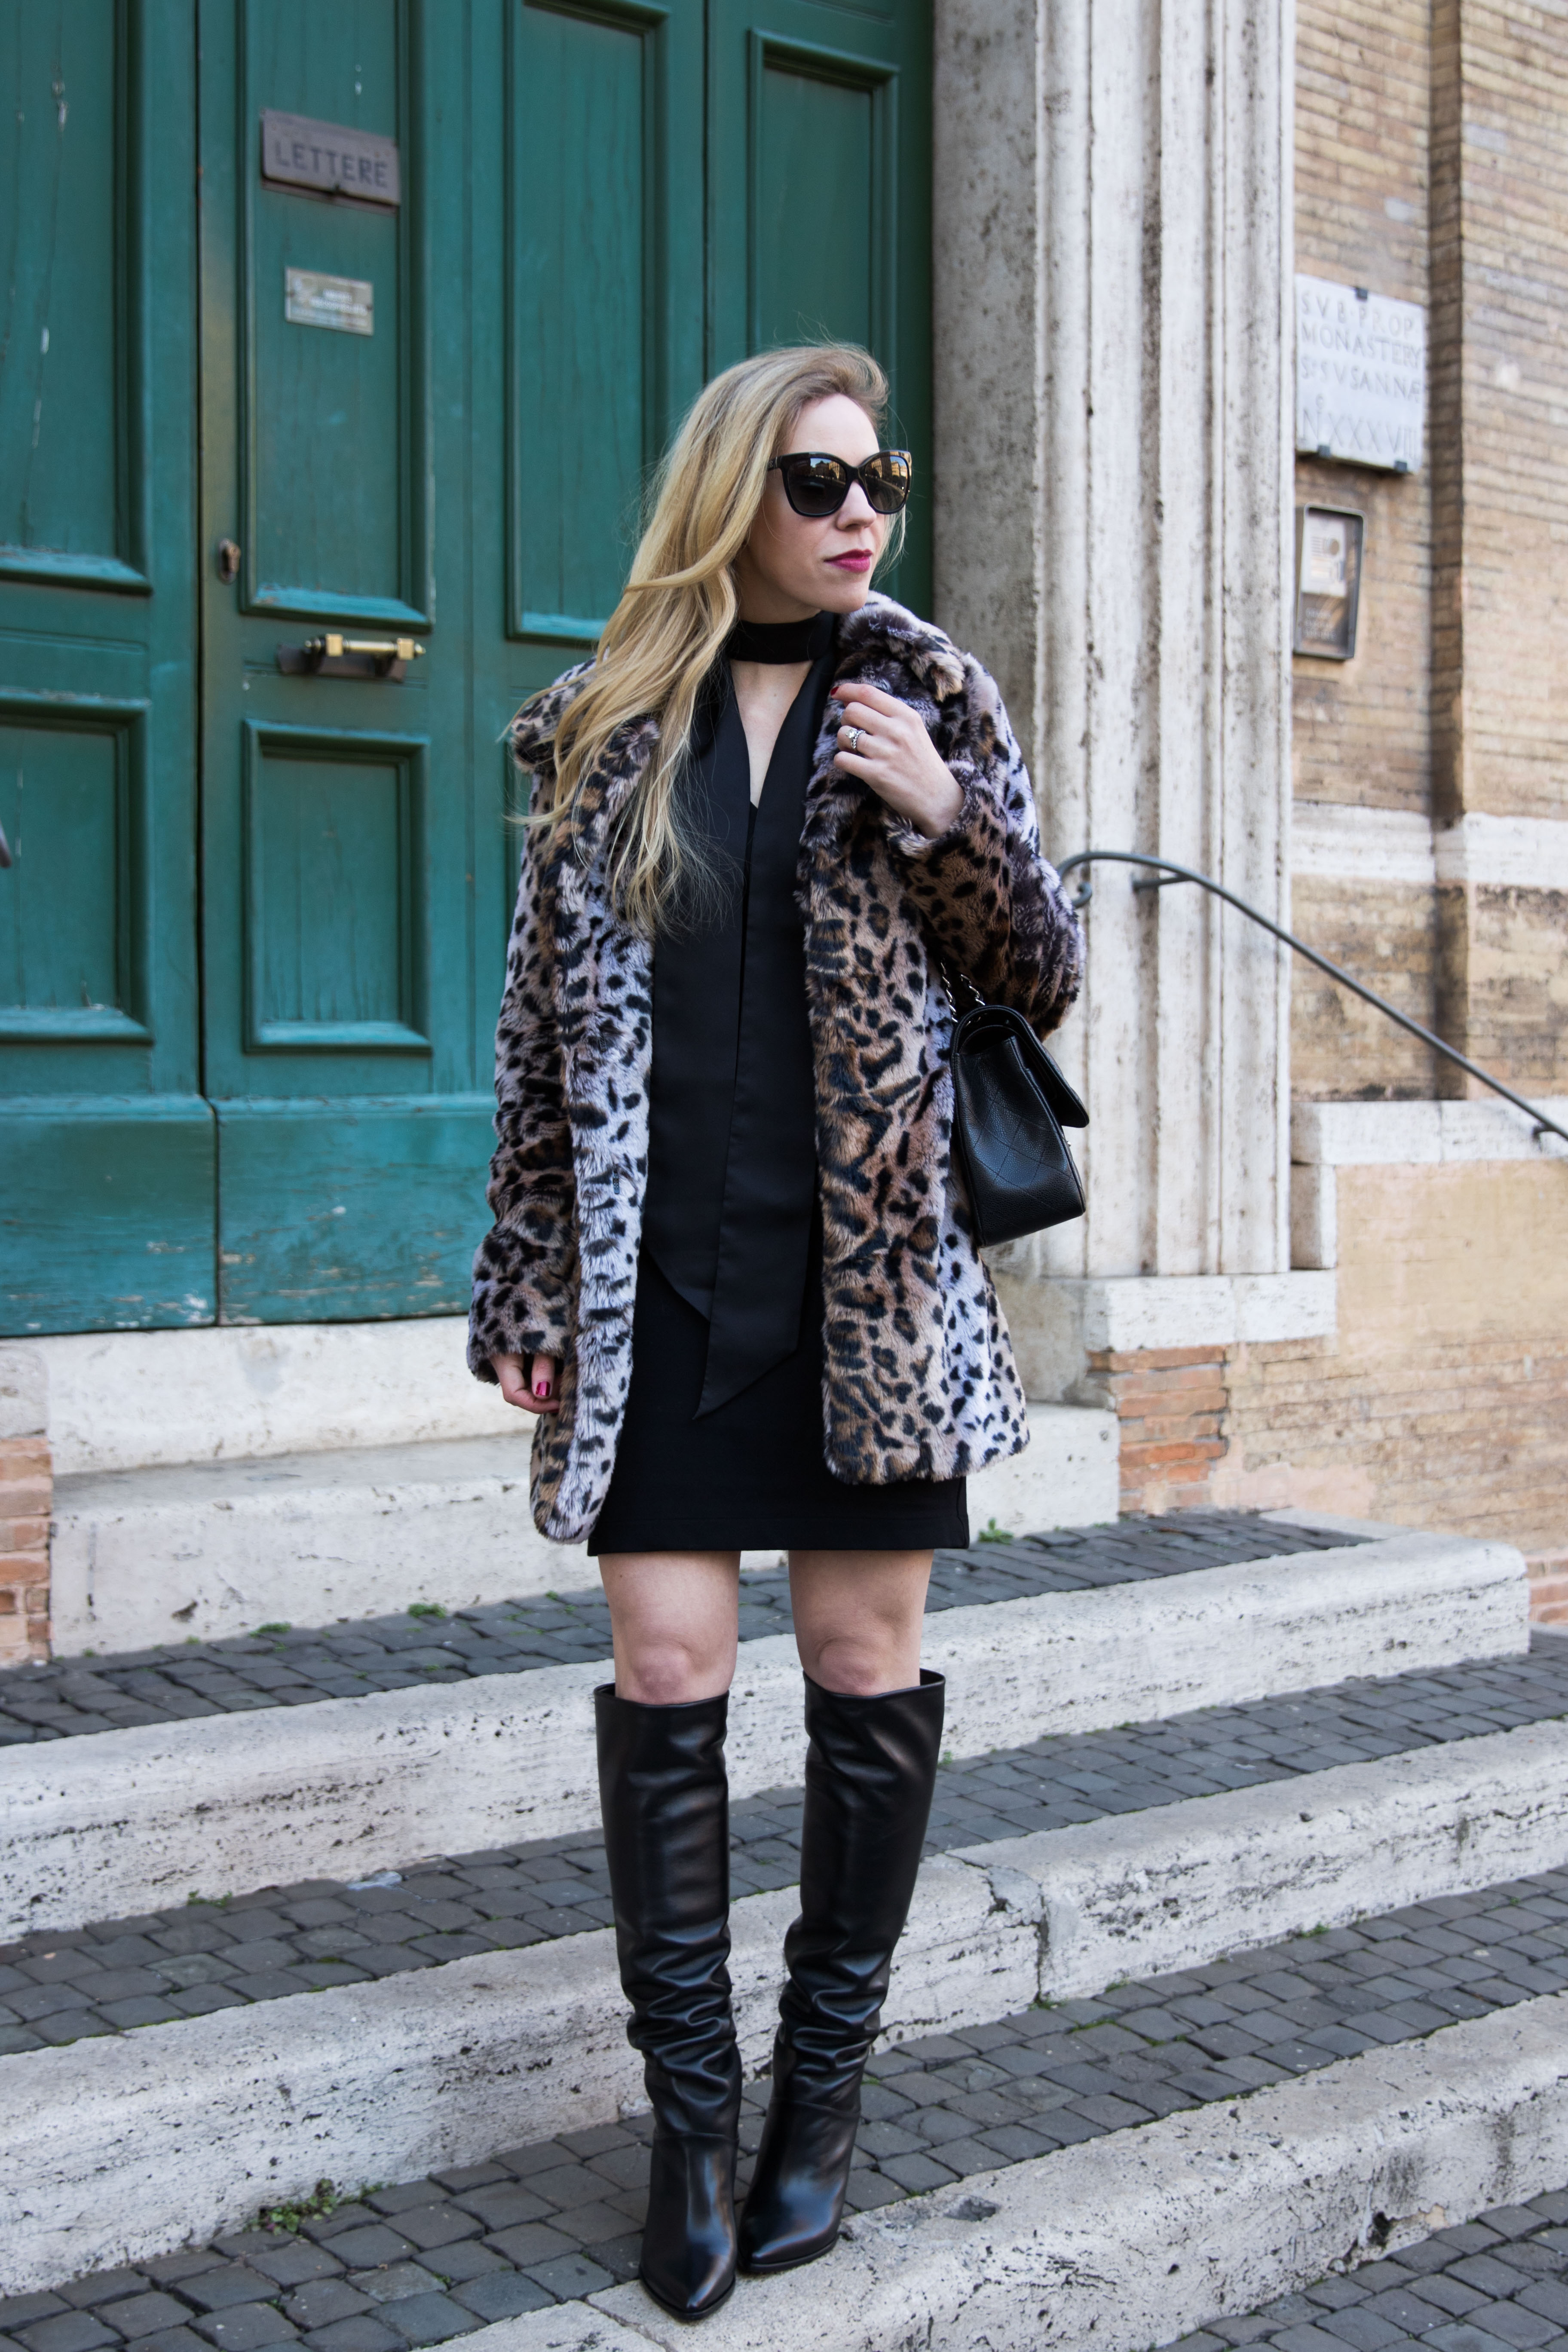 fashion-blogger-wearing-faux-fur-leopard-coat-with-black-dress-and-black-skinny-scarf-stuart-weitzman-scrunchy-knee-high-leather-boots